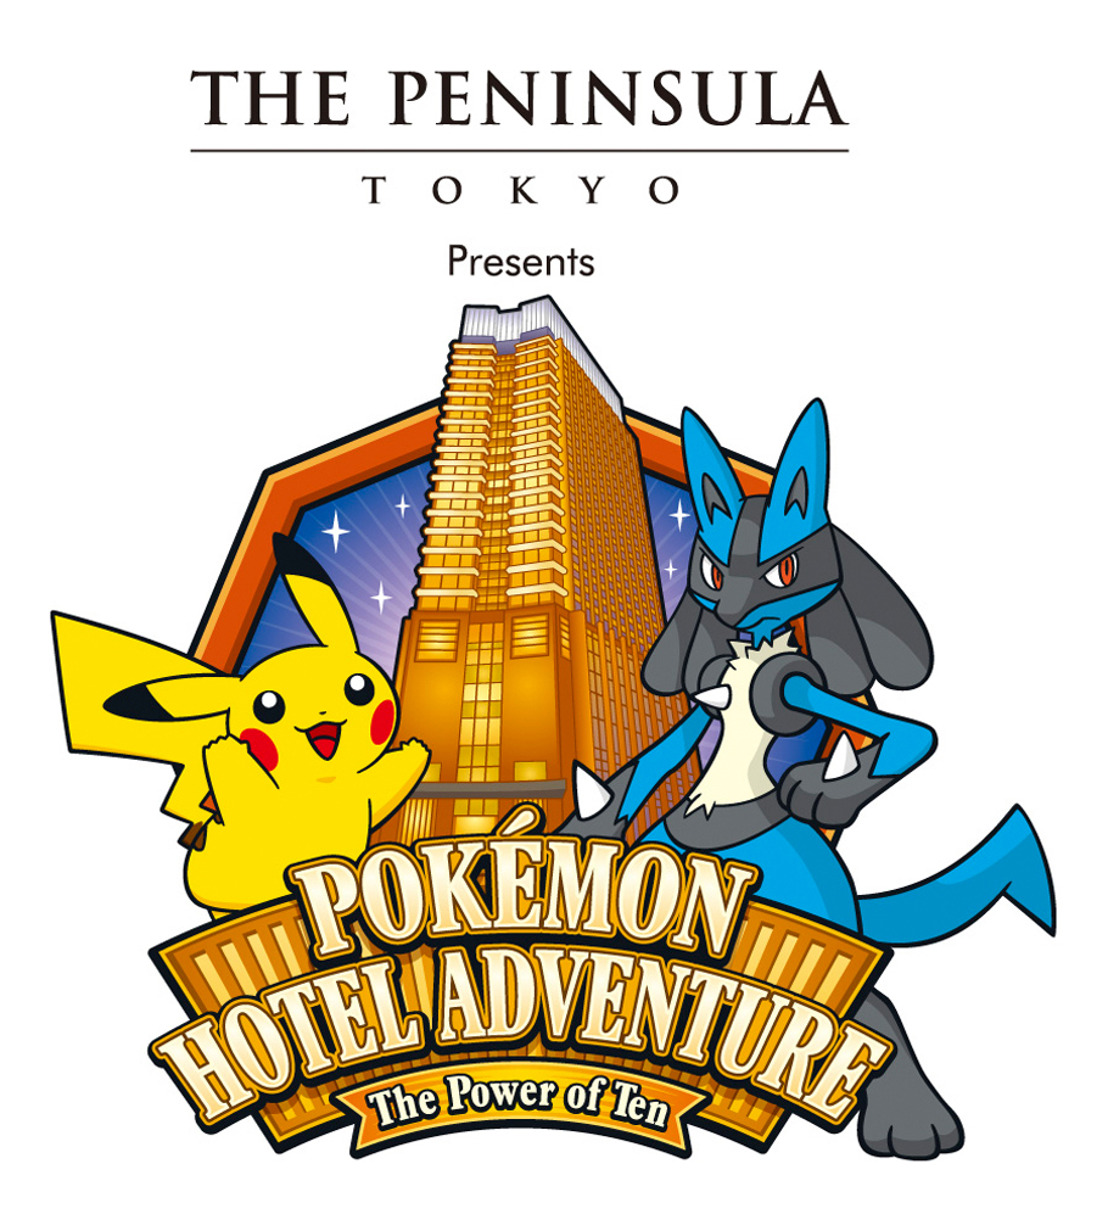 "THE PENINSULA TOKYO PRESENTA ""THE POKÉMON HOTEL ADVENTURE: THE POWER OF TEN"""